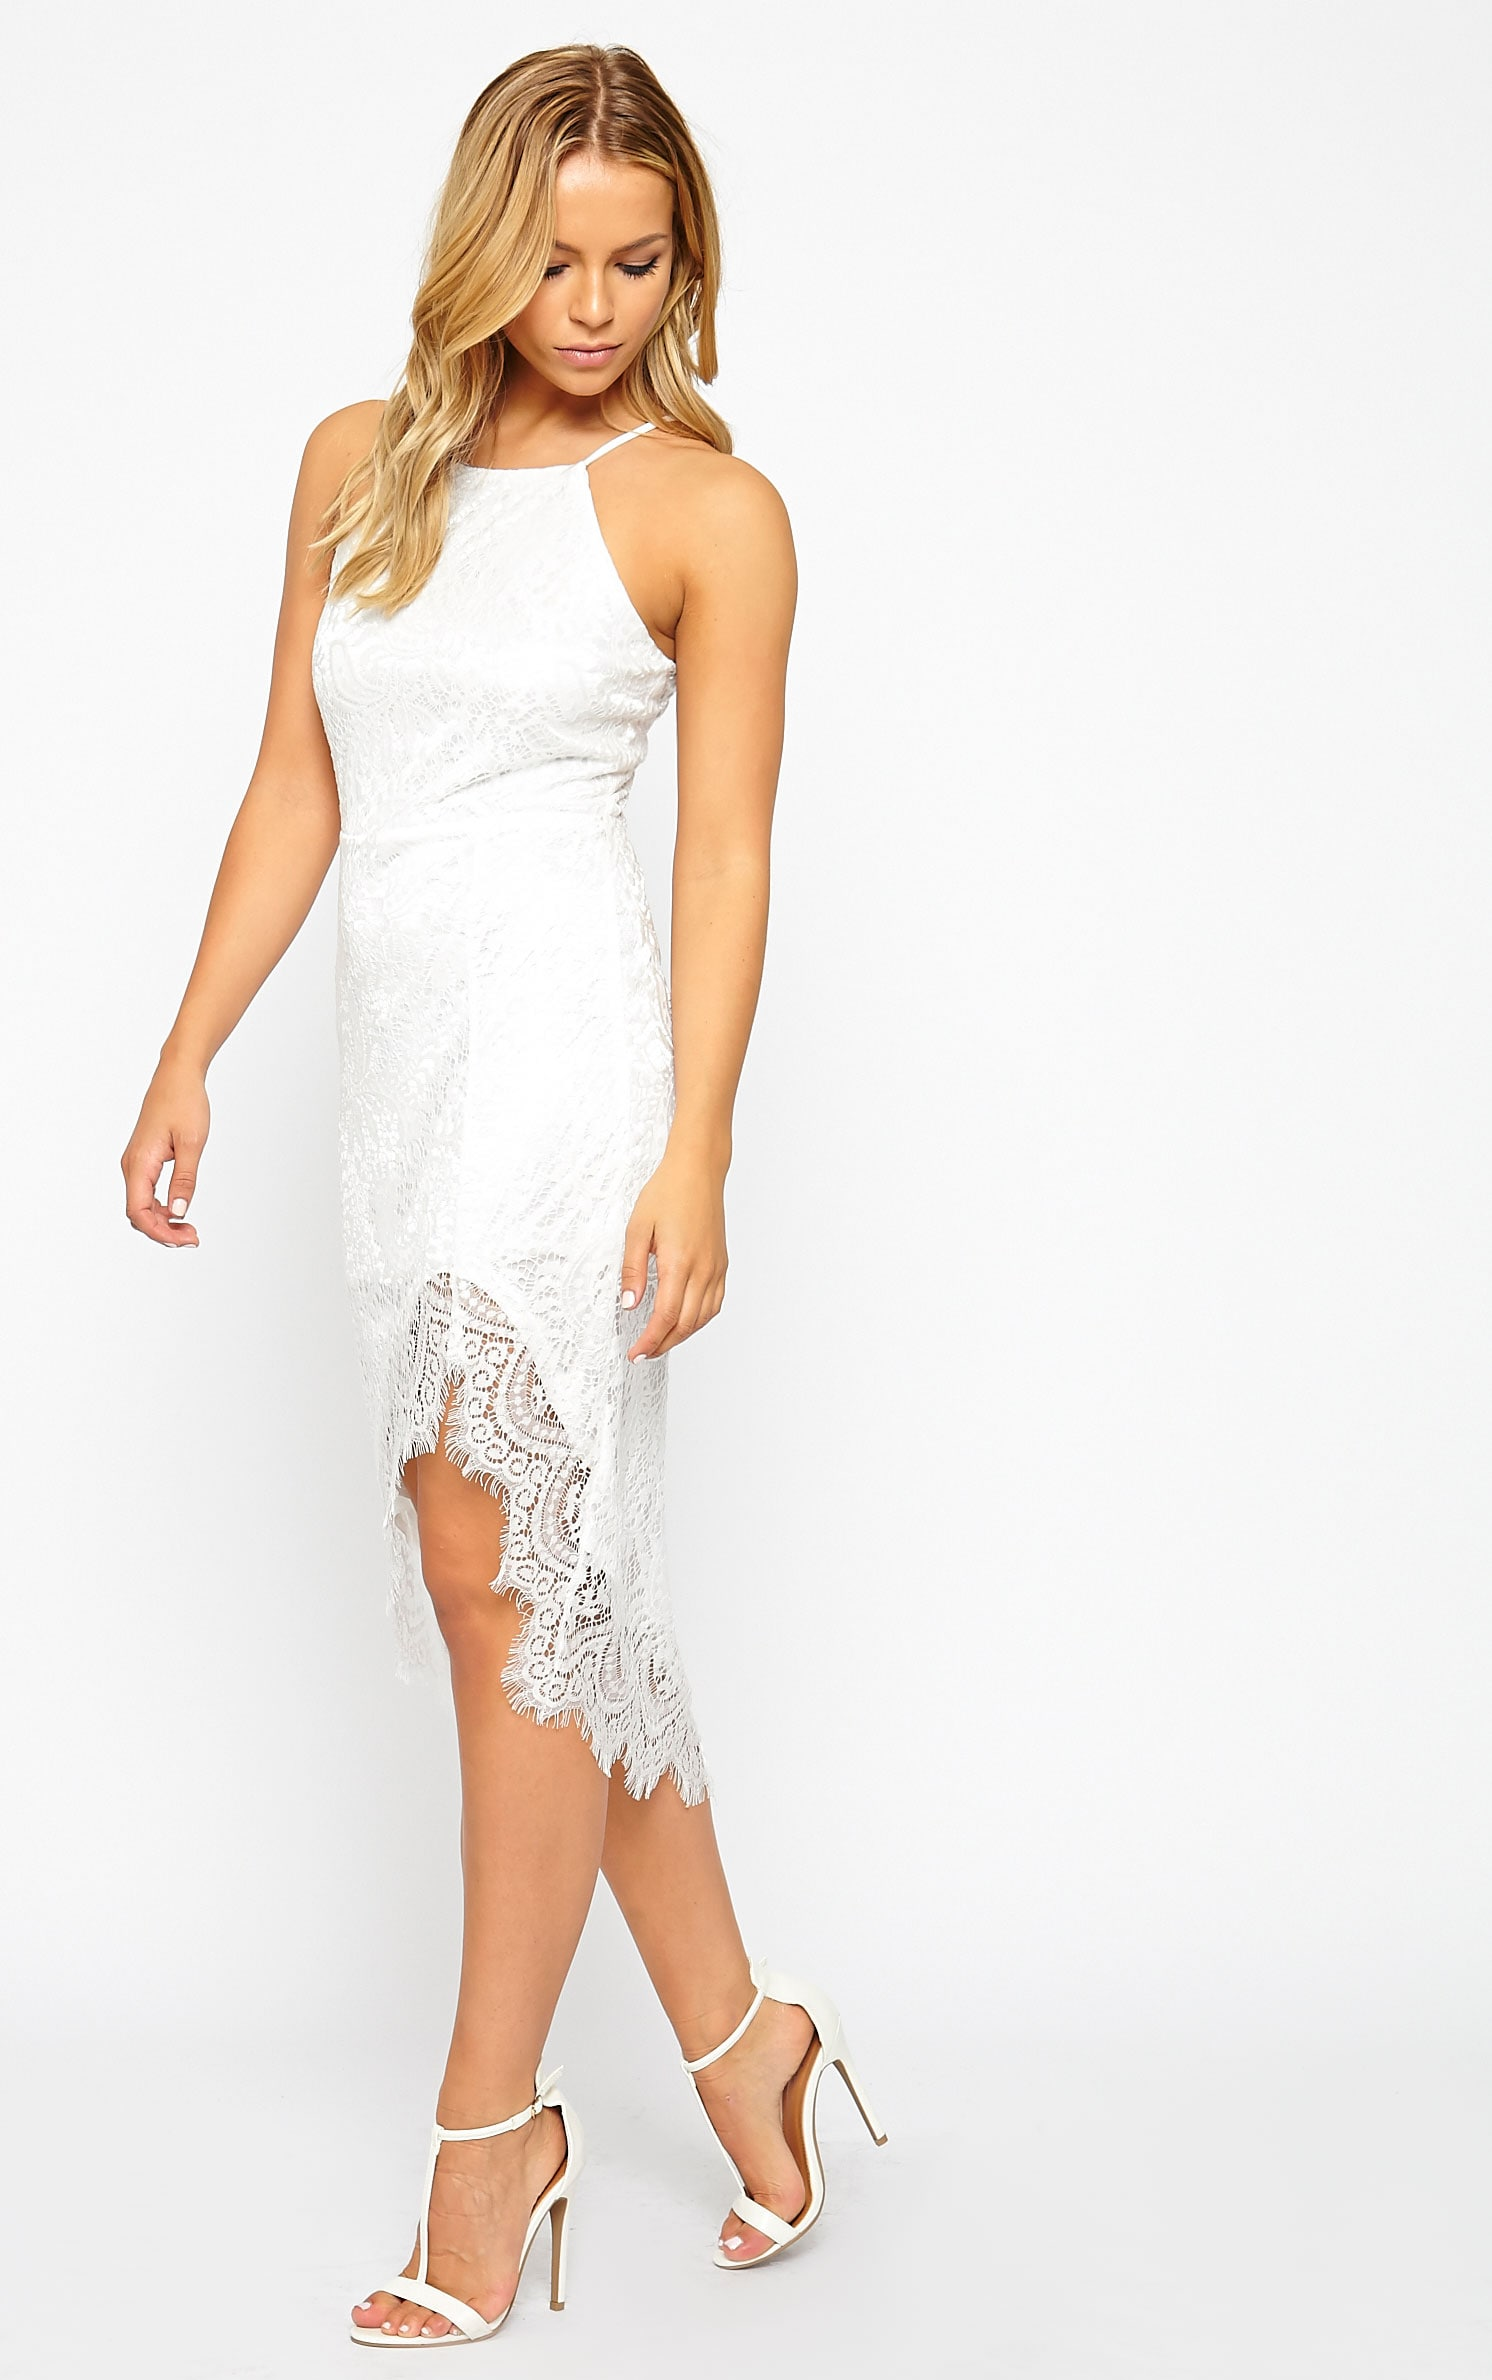 Trinny White Lace Dress 1